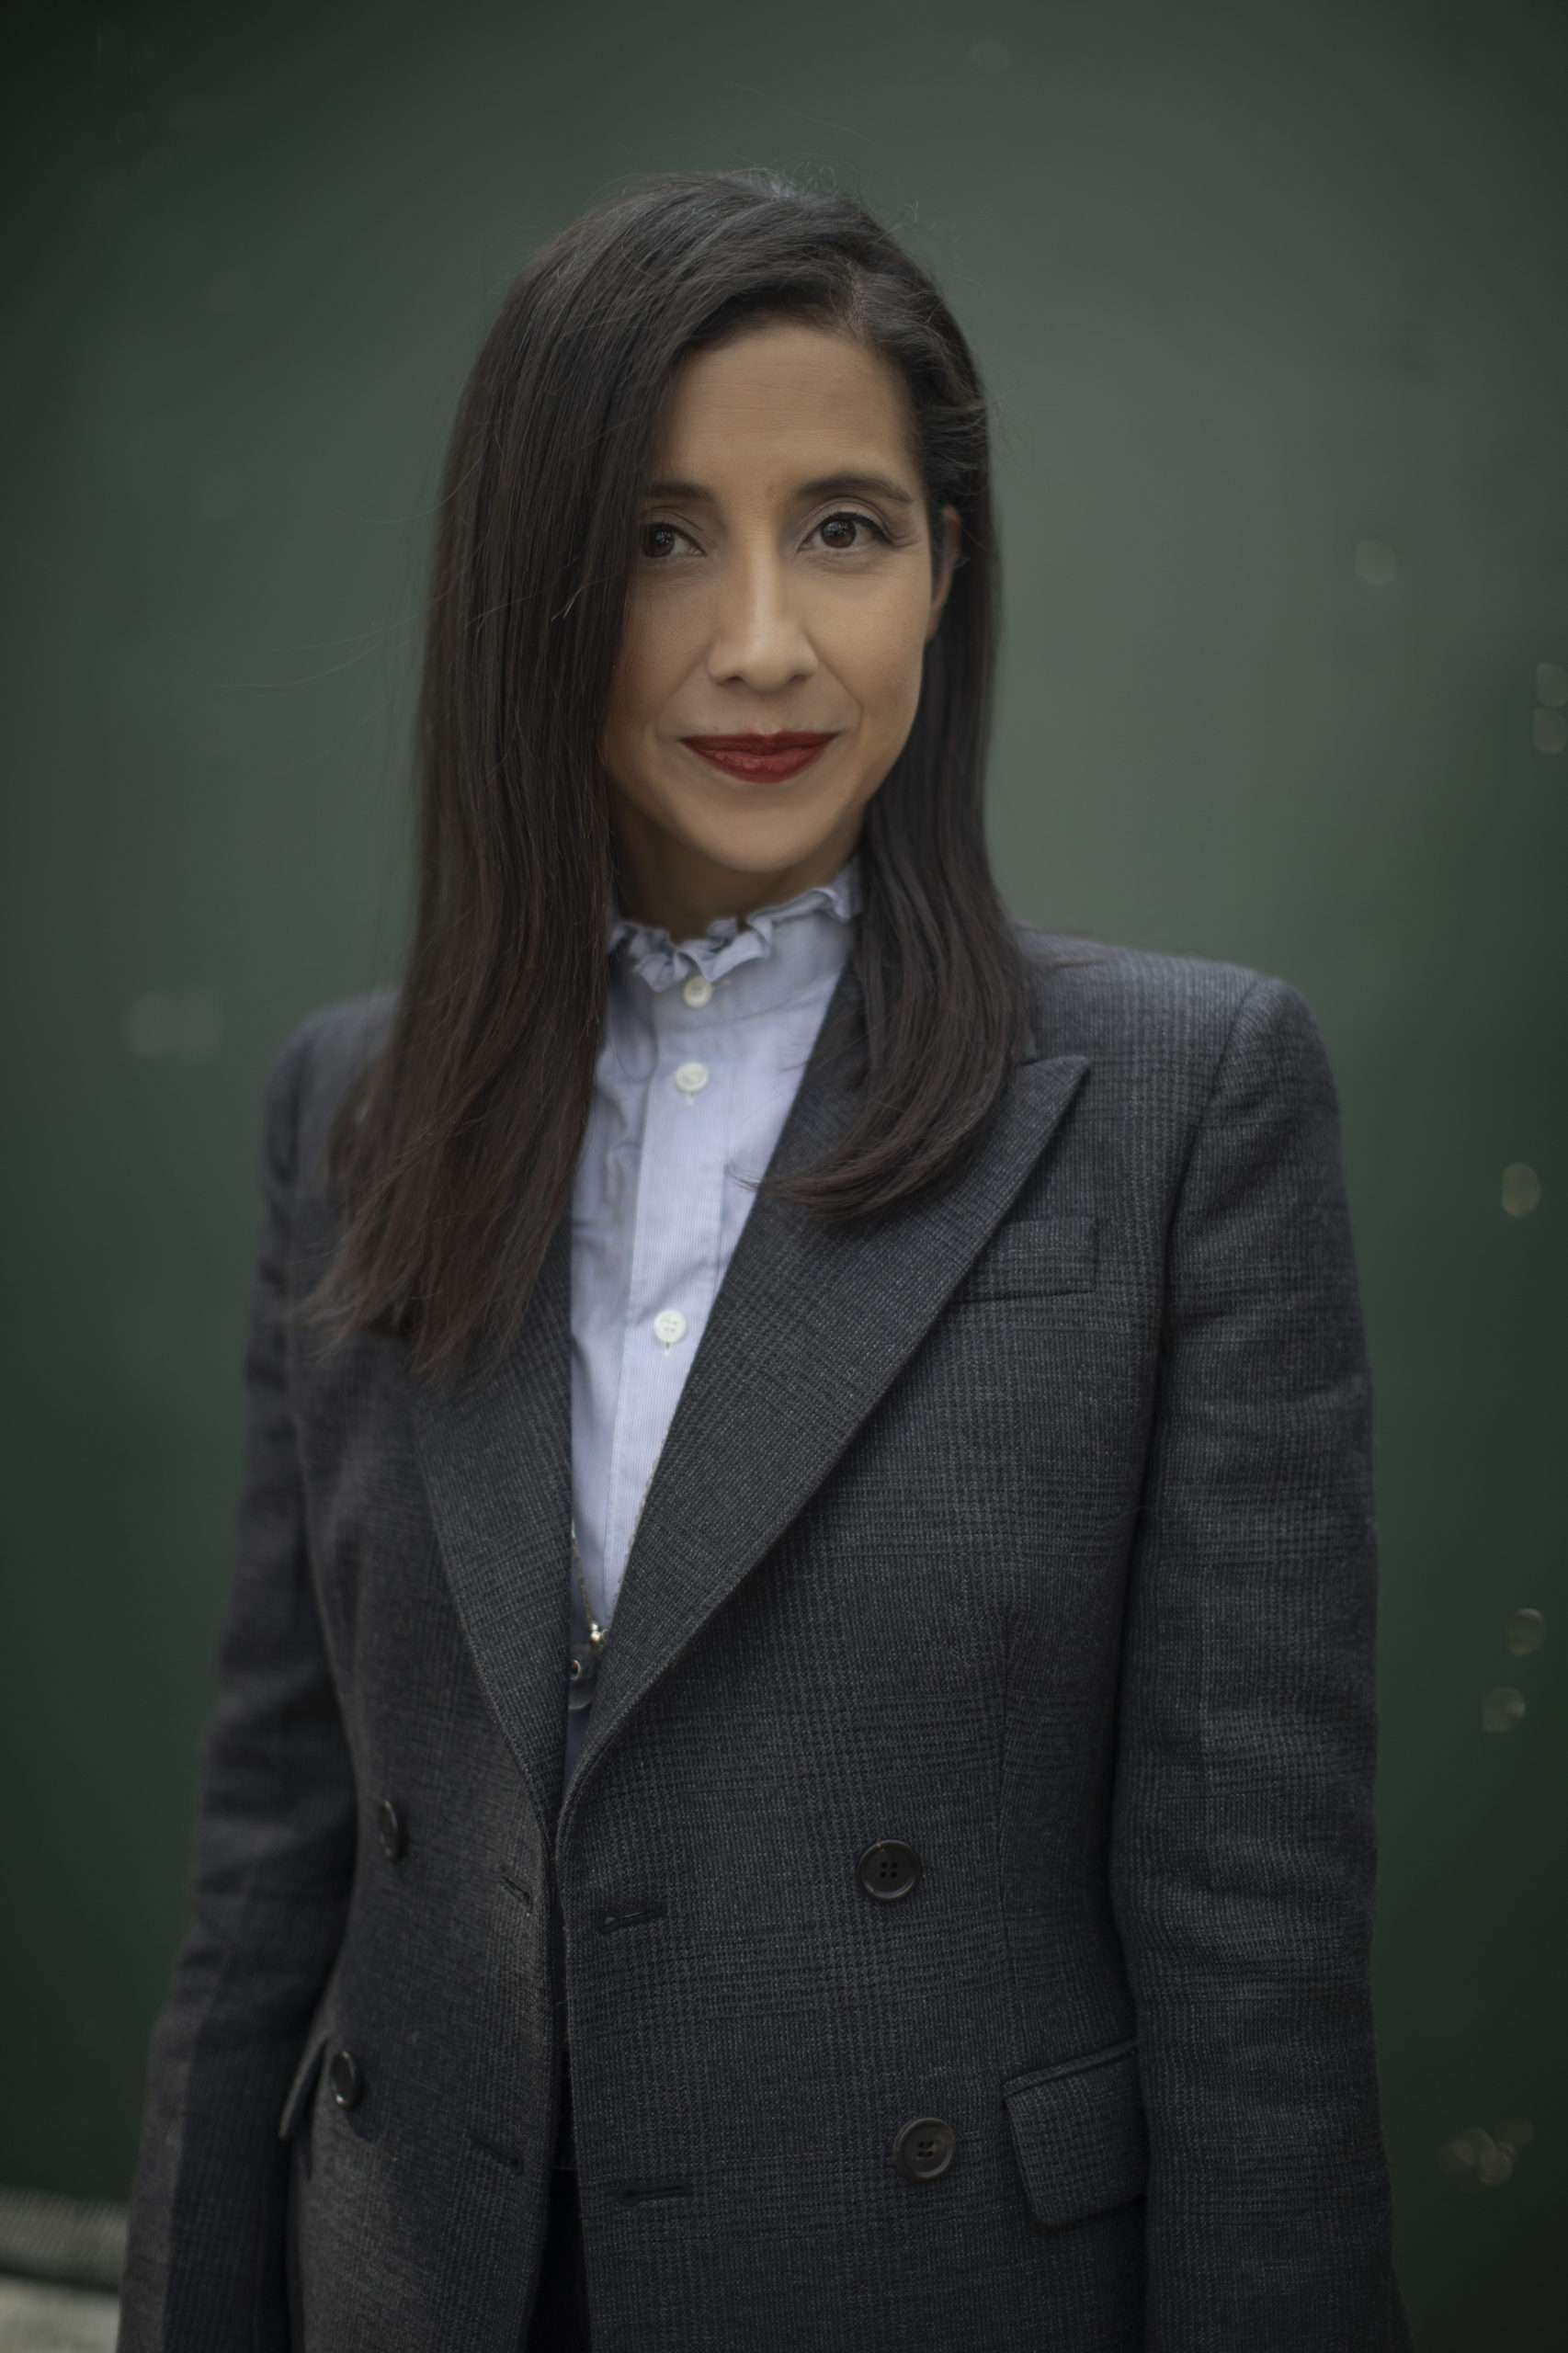 A photo of Karla Martinez. She is wearing a dark gray blazer, blue high-collared button down shirt, red lipstick, and has straight brown hair. She is standing in front of a gray/green background